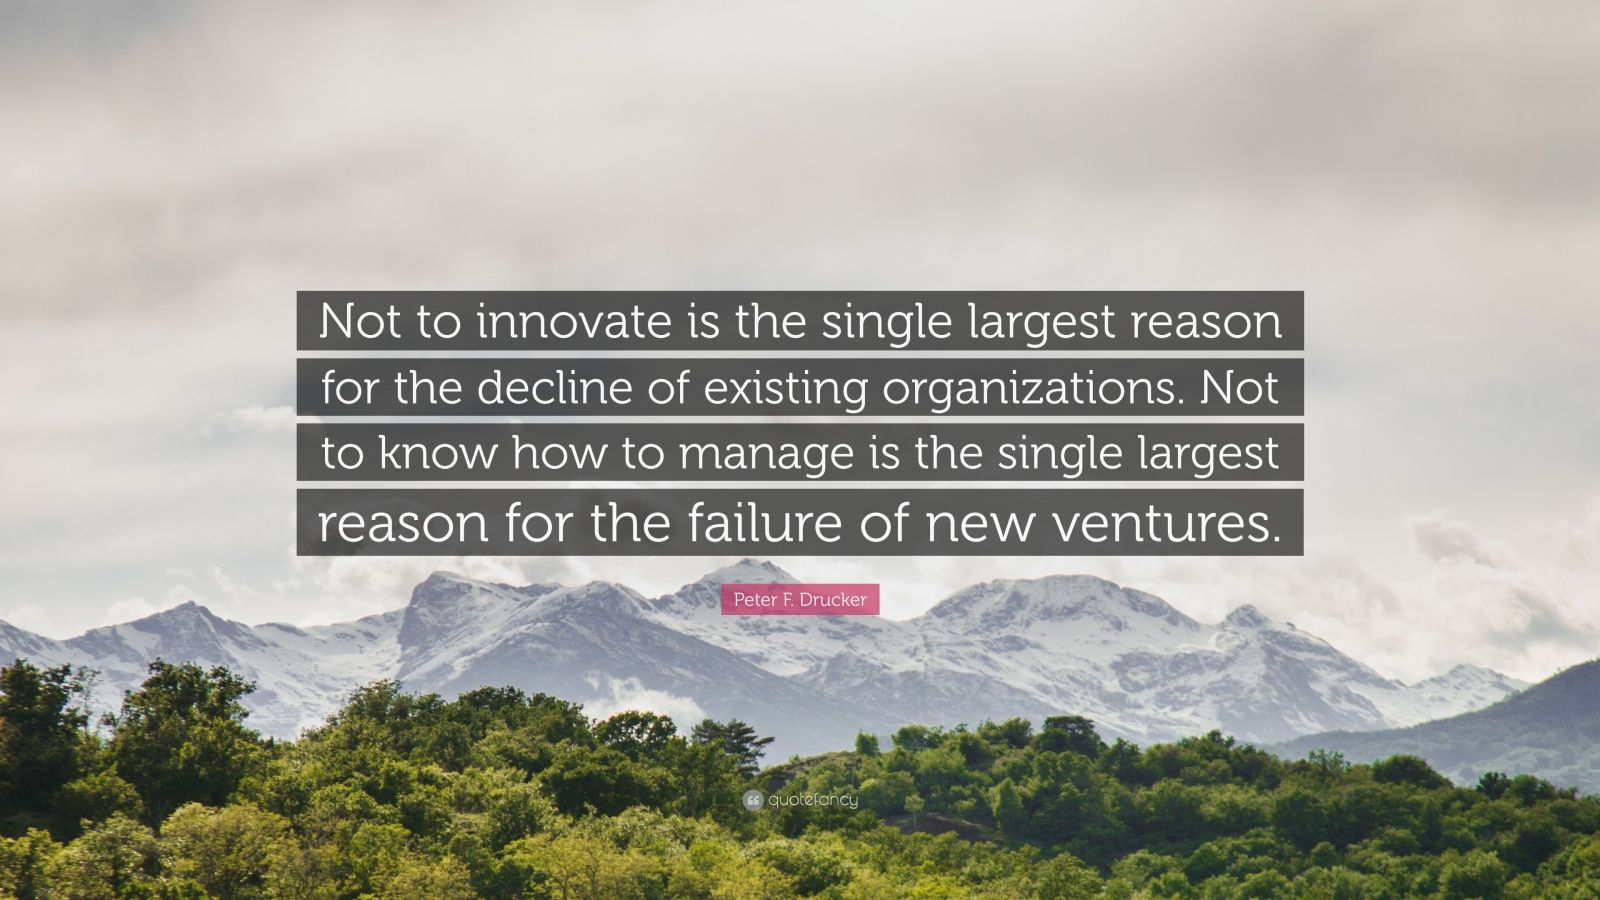 """Peter F. Drucker Quote: """"Not to innovate is the single largest reason for the decline of existing organizations. Not to know how to manage is the single largest reason for the failure of new ventures."""""""